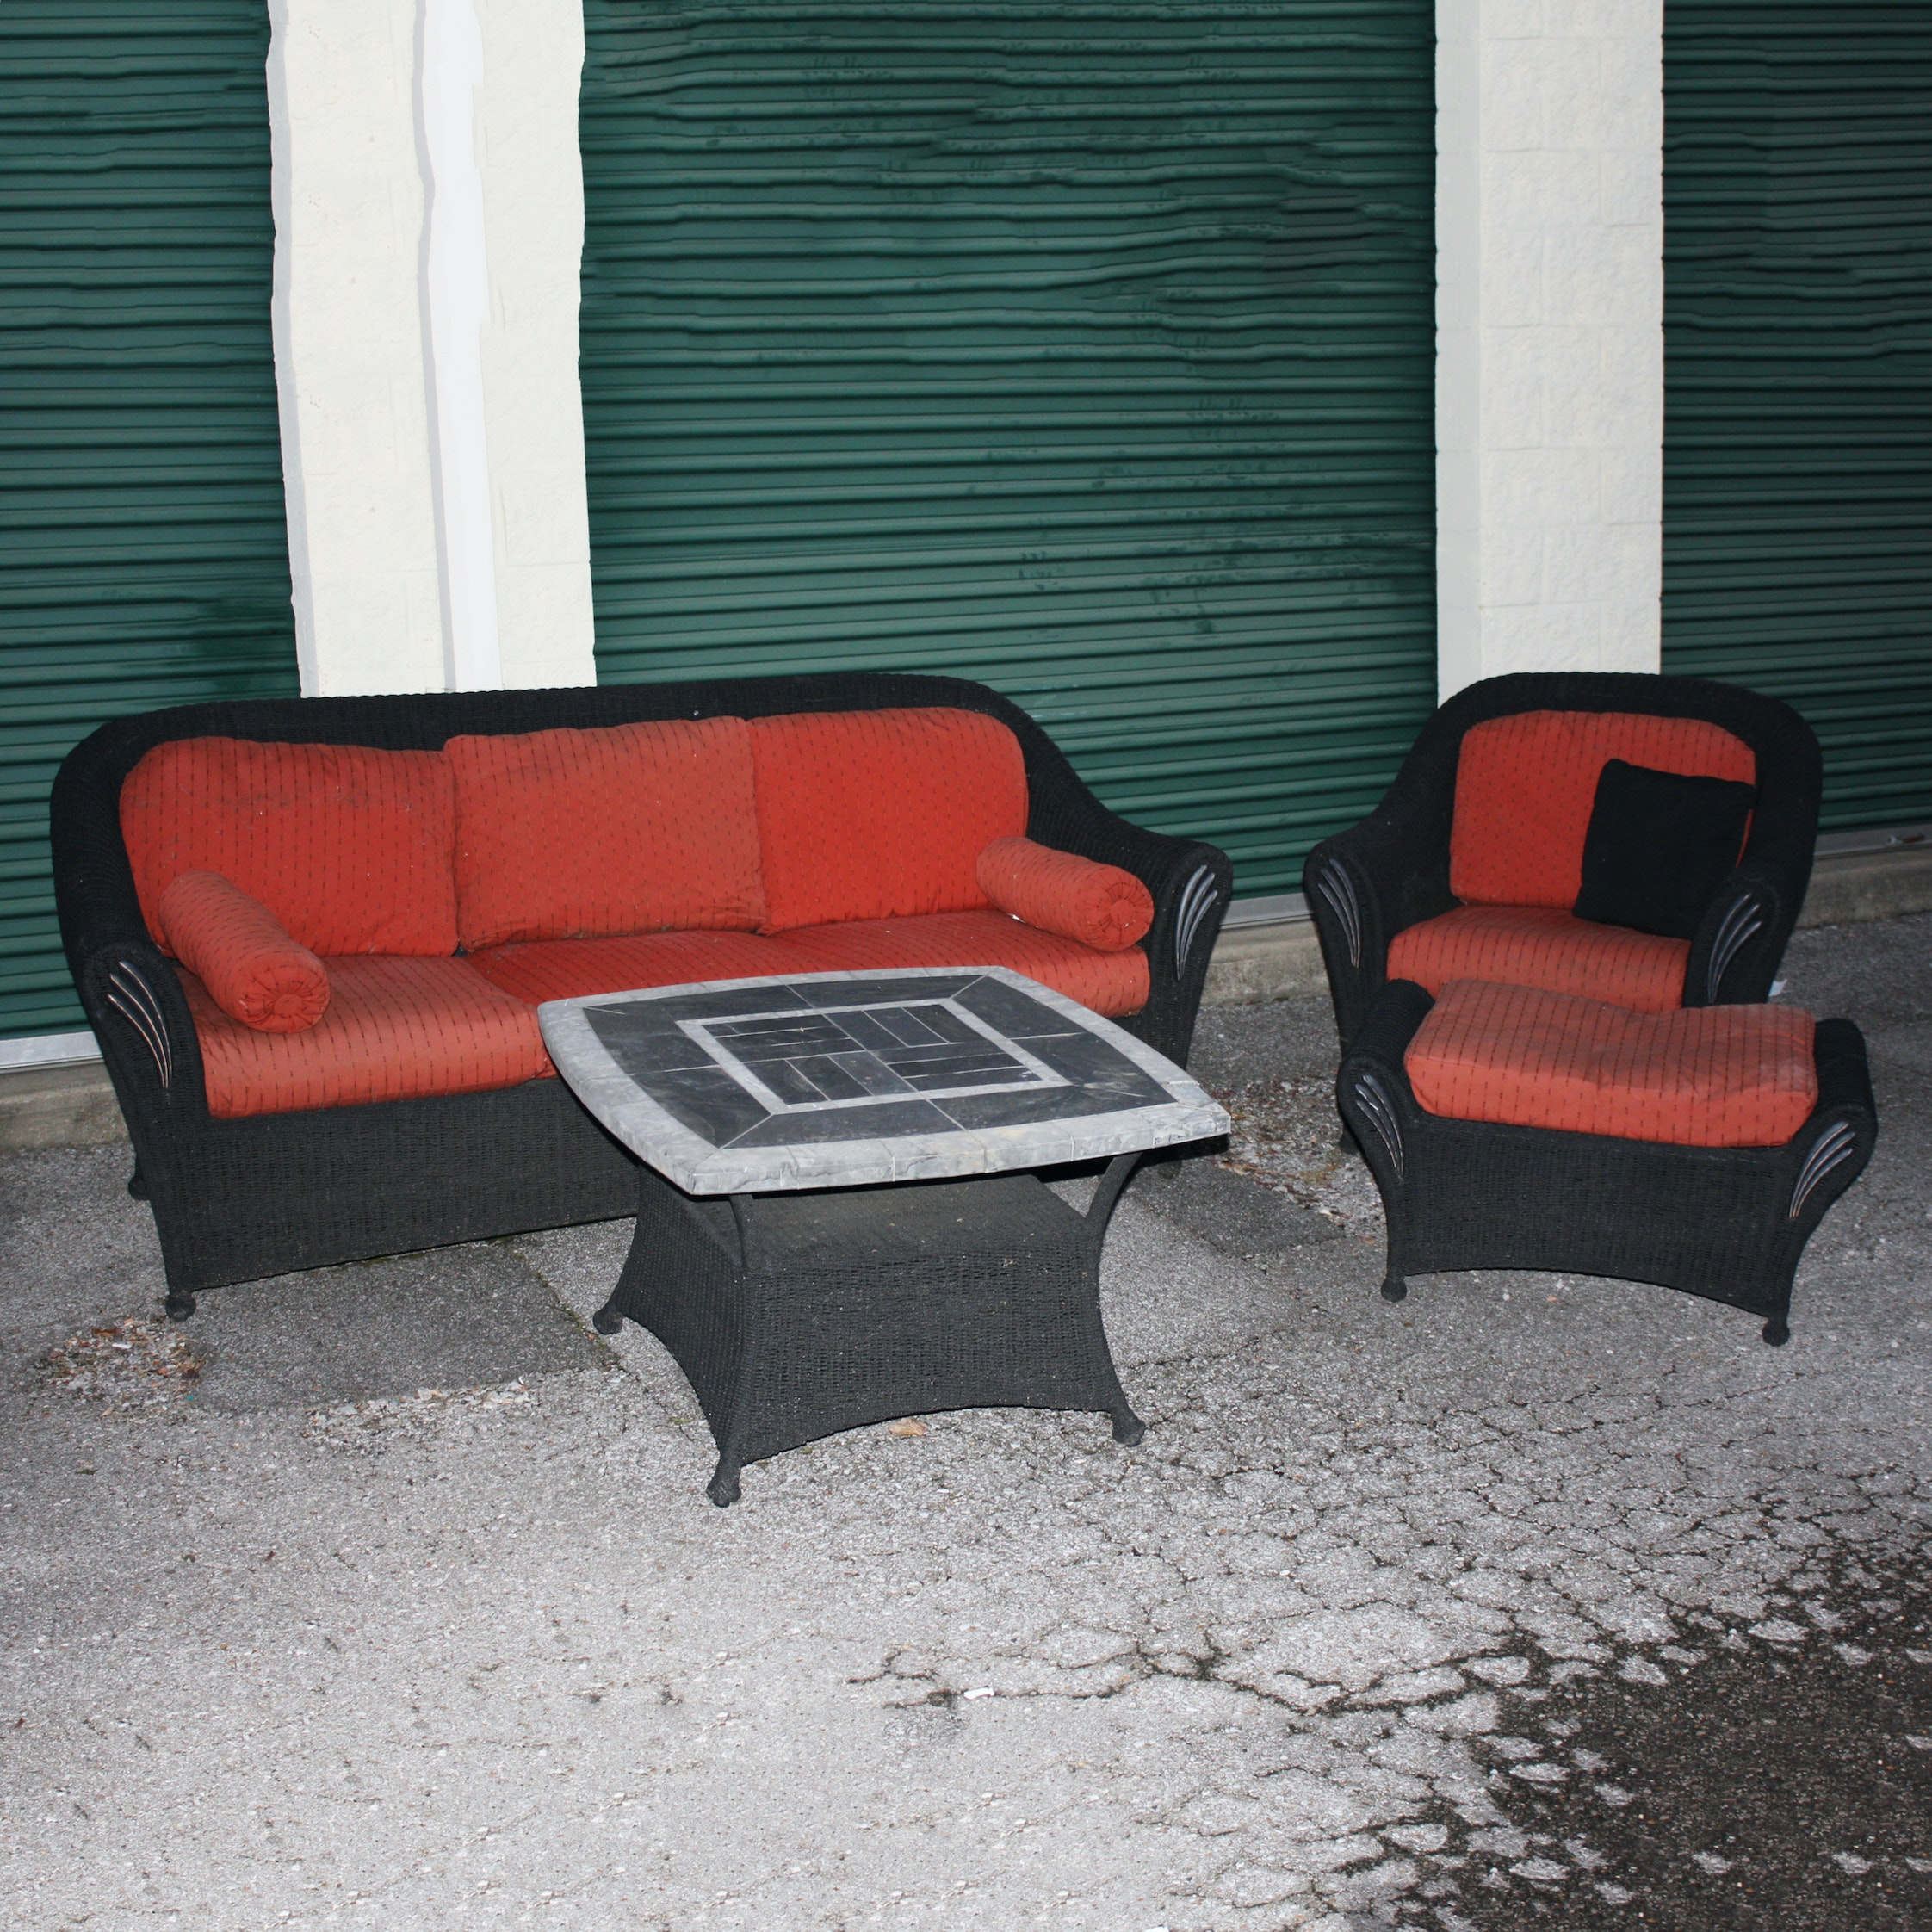 Outdoor Wicker Sofa, Table, and Chair with Ottoman